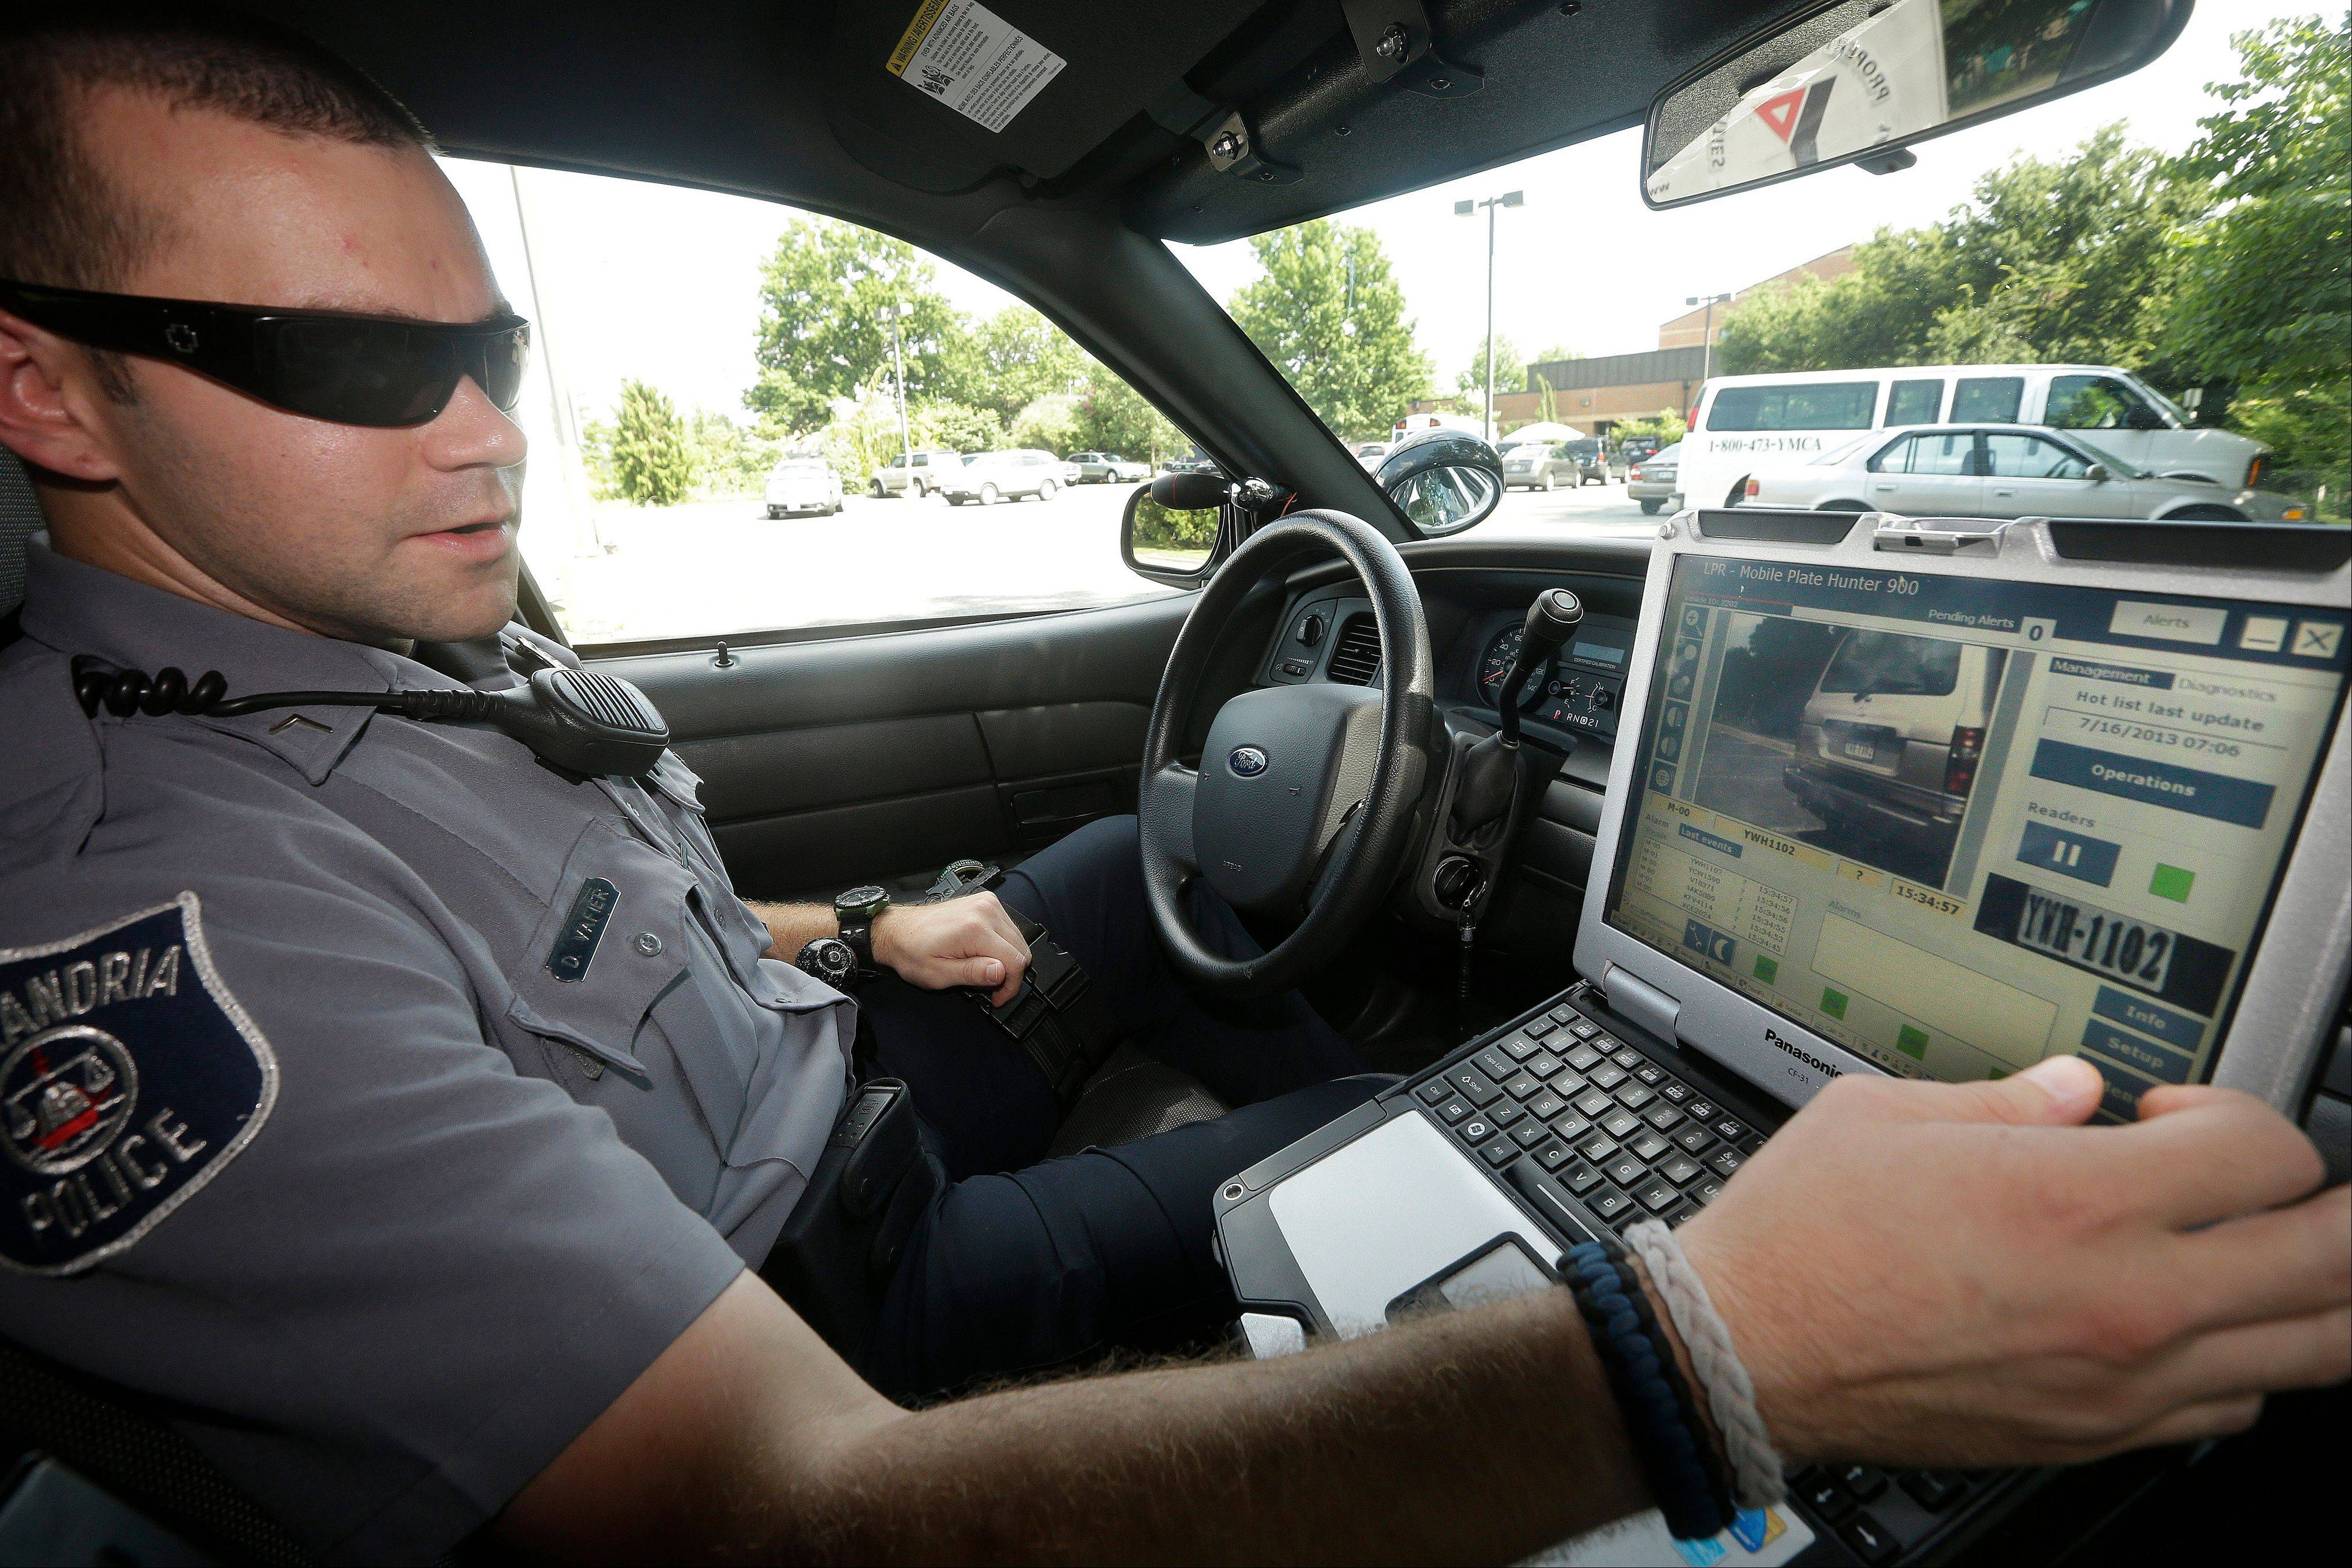 Local police departments across the country have amassed digital records of vehicles with a license plate using automated scanners.